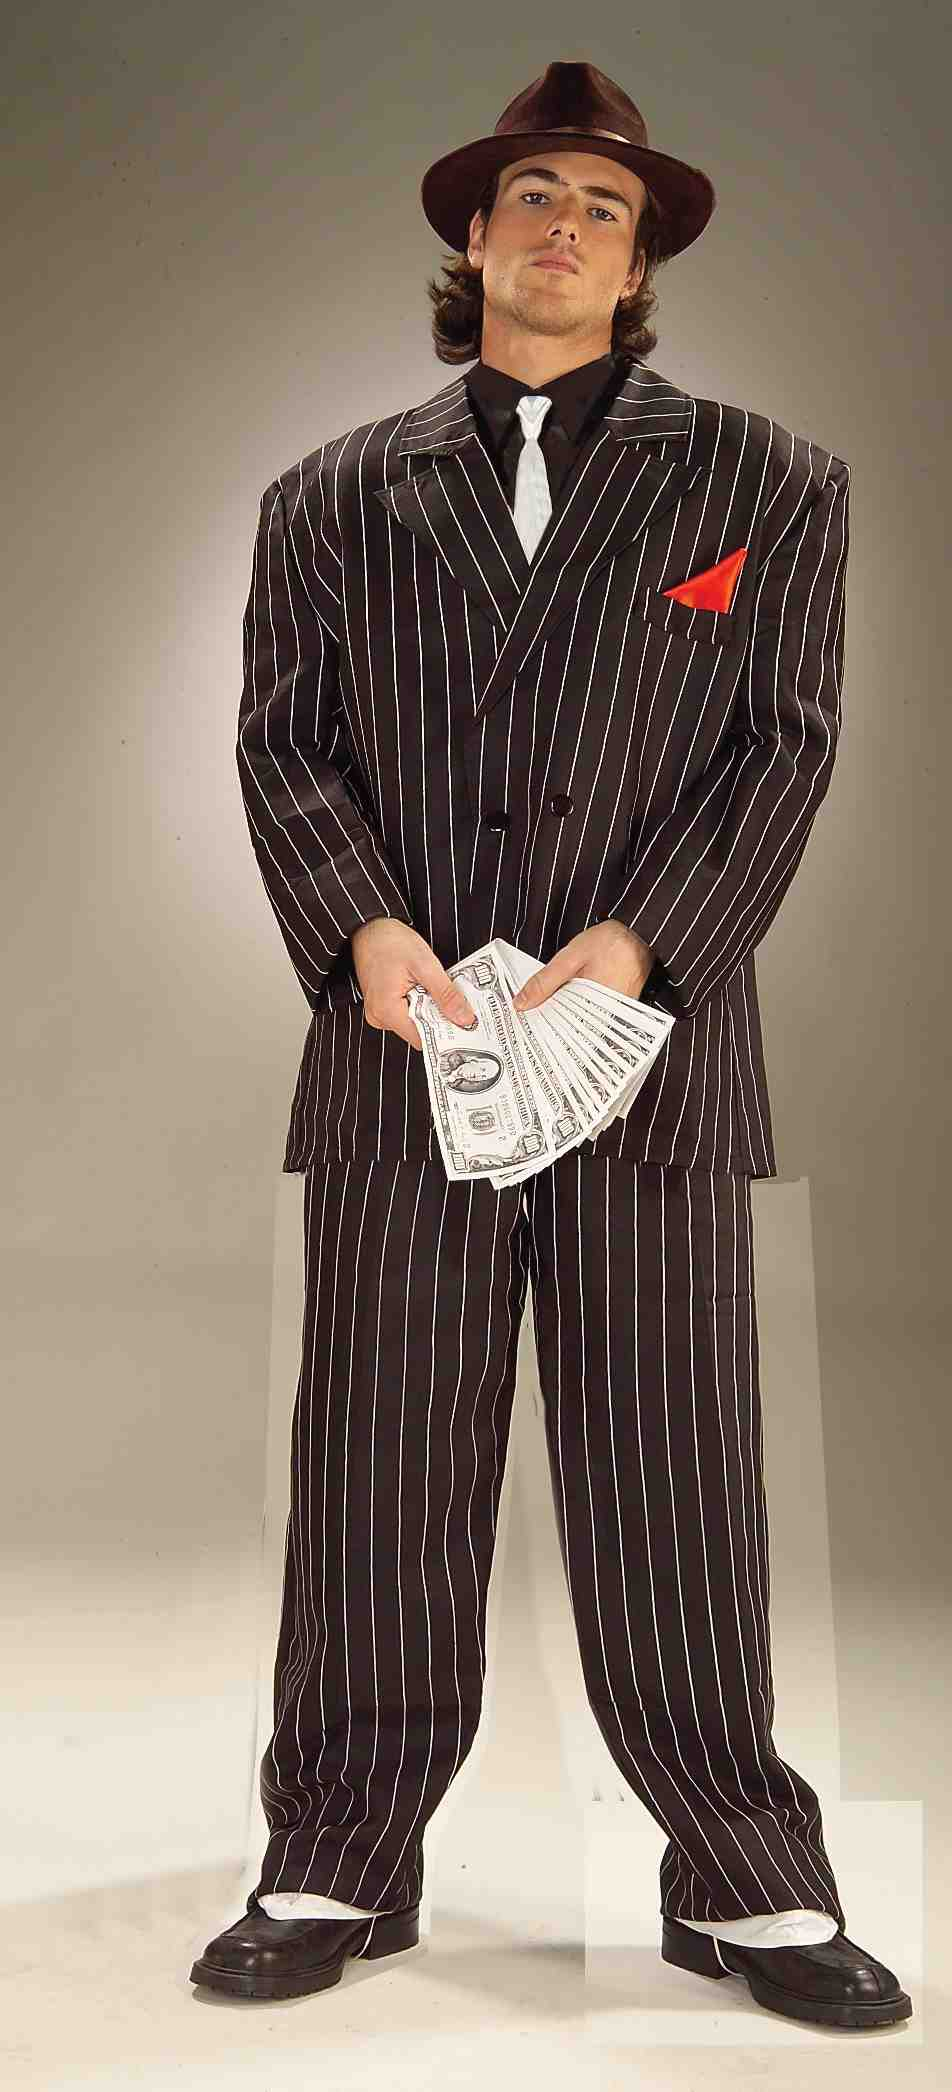 adult male in gangster pinstripe suit with hat shoes and money for accessories